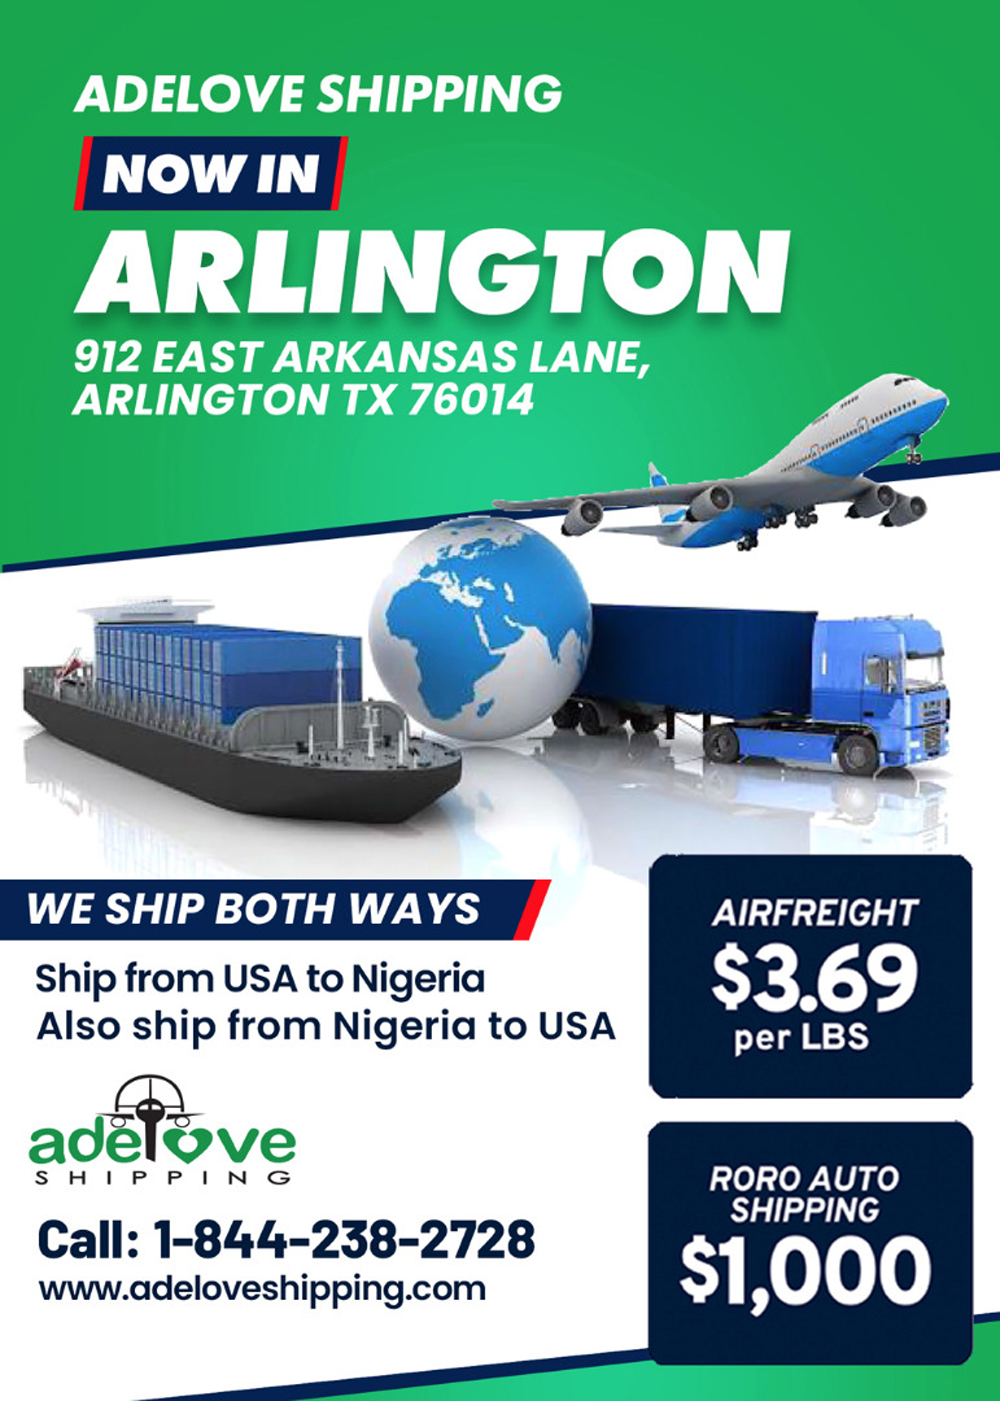 Adelove Shipping now in Arlington Texas ; See other Locations